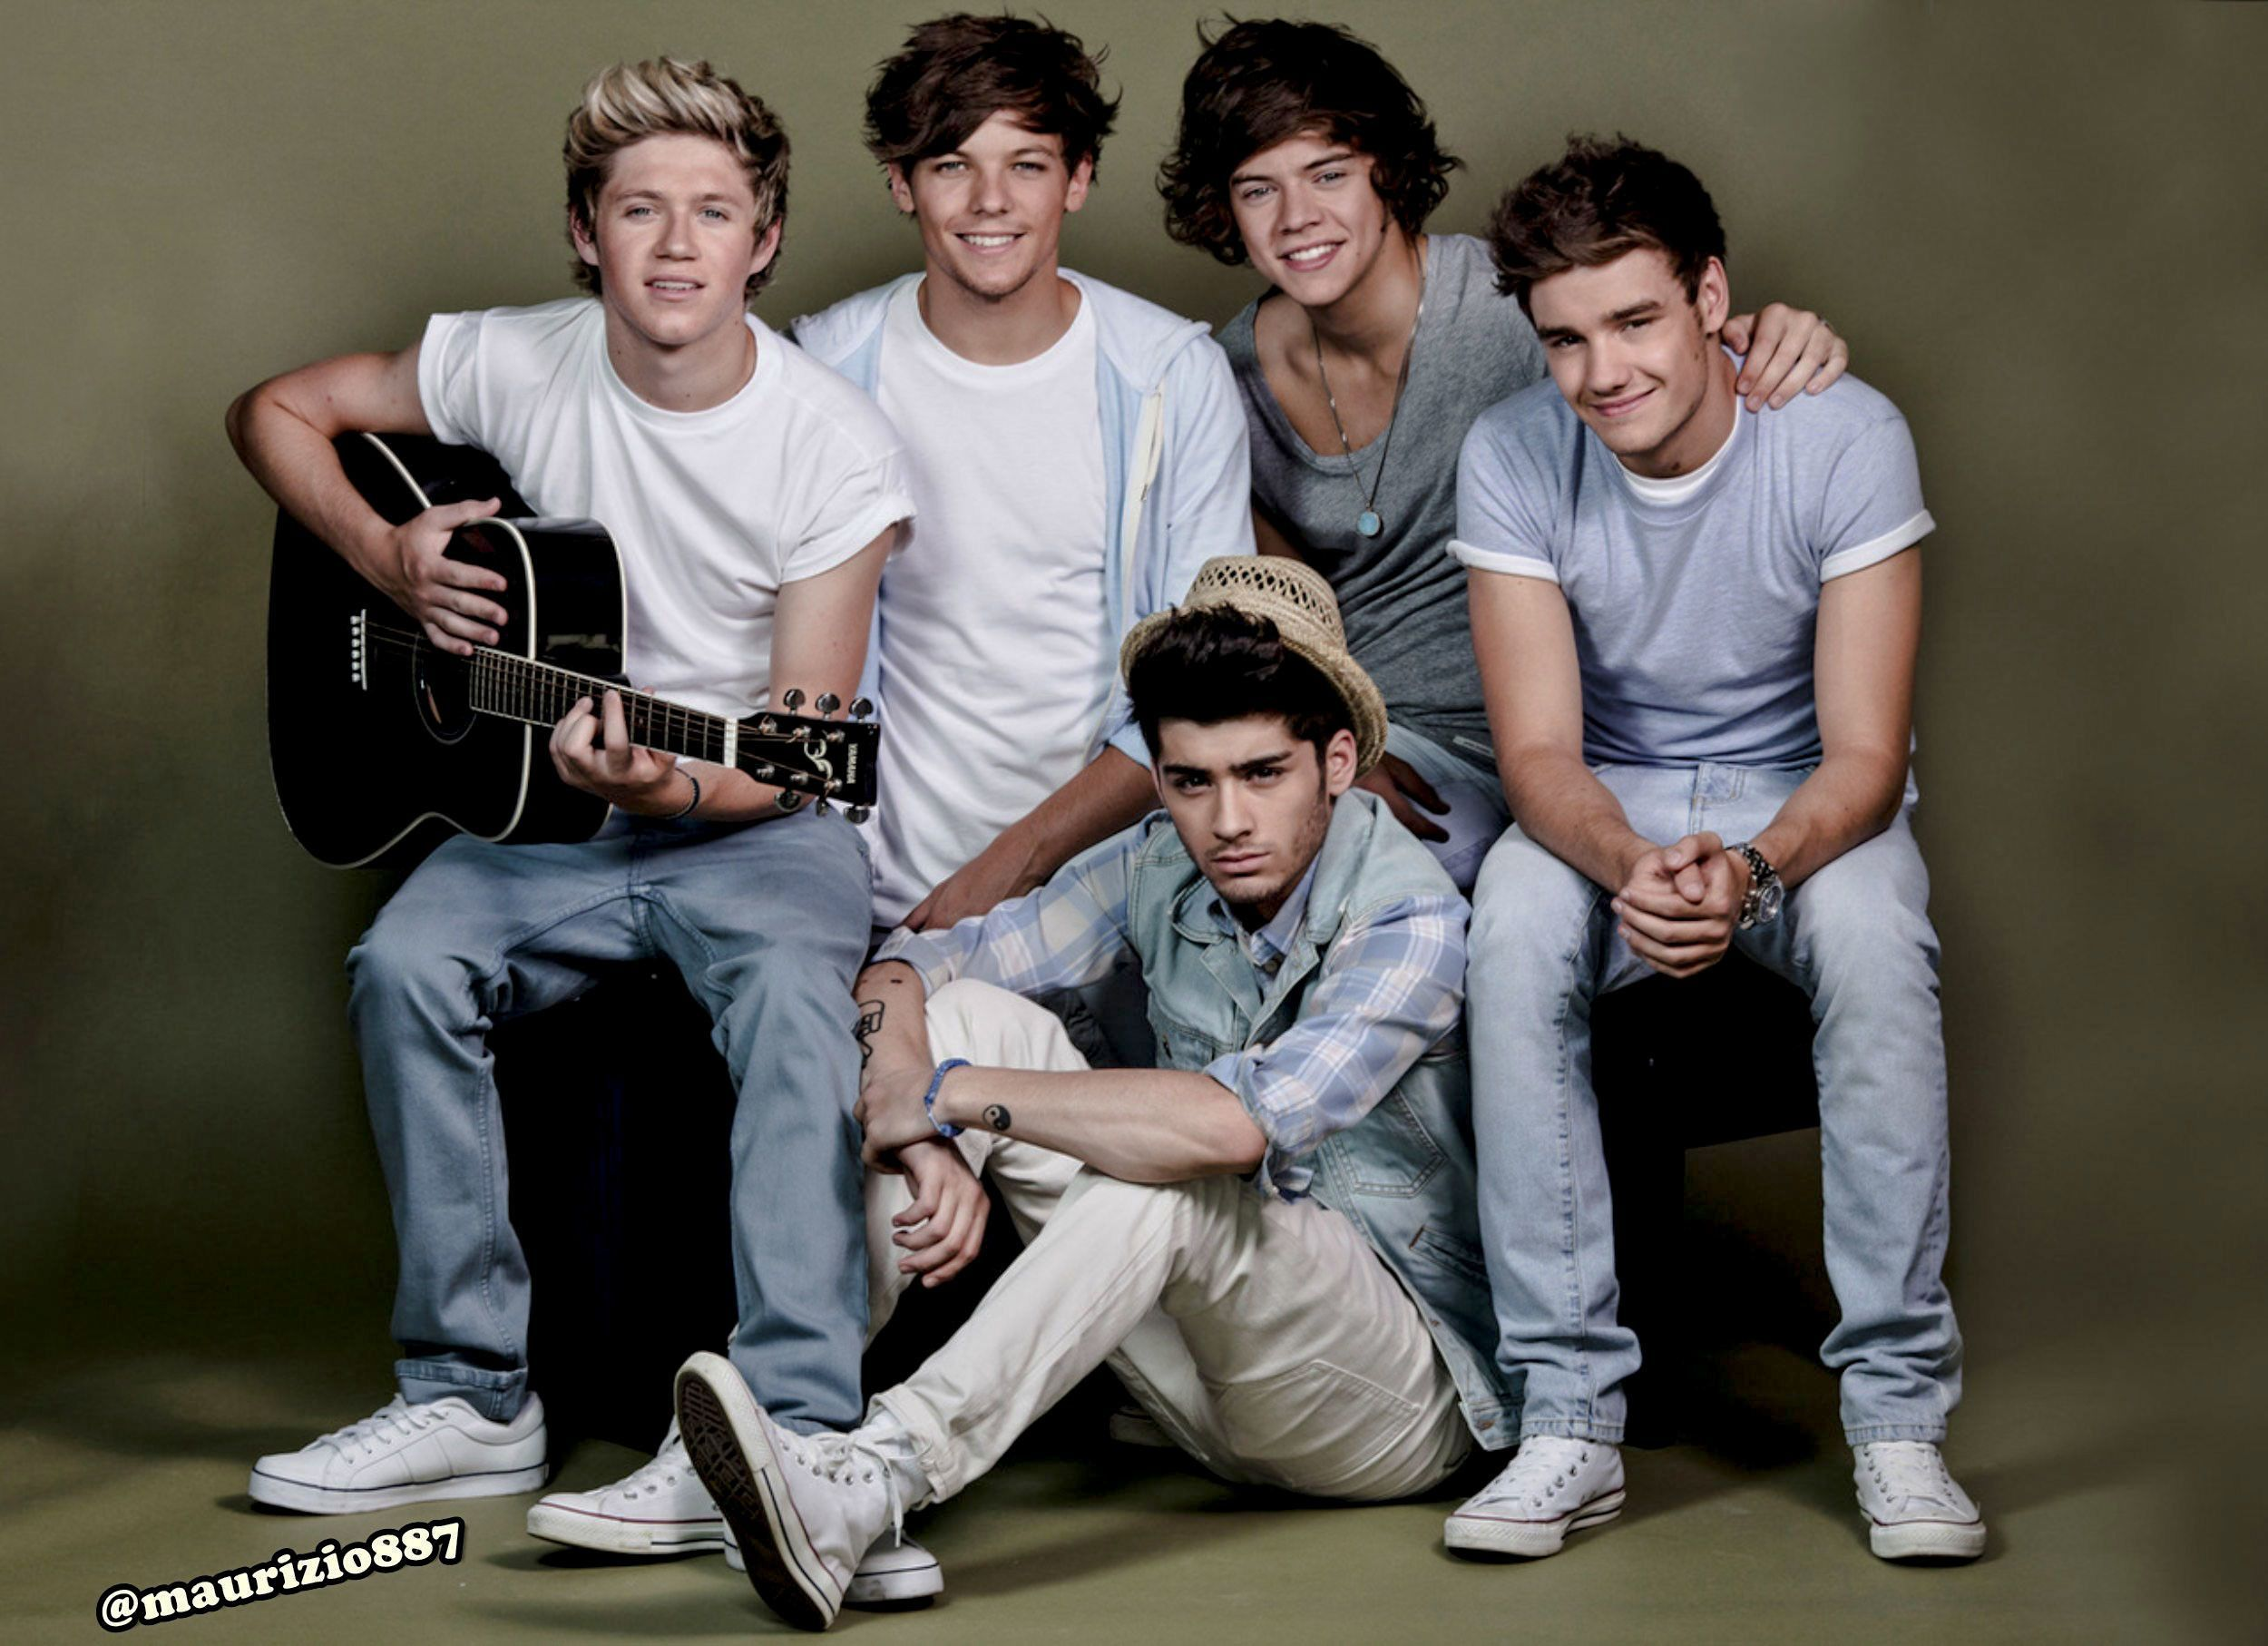 One Direction Wallpaper for Laptop (64+ images) #onedirection2014 One Direction Wallpaper for Laptop (64+ images) #onedirection2014